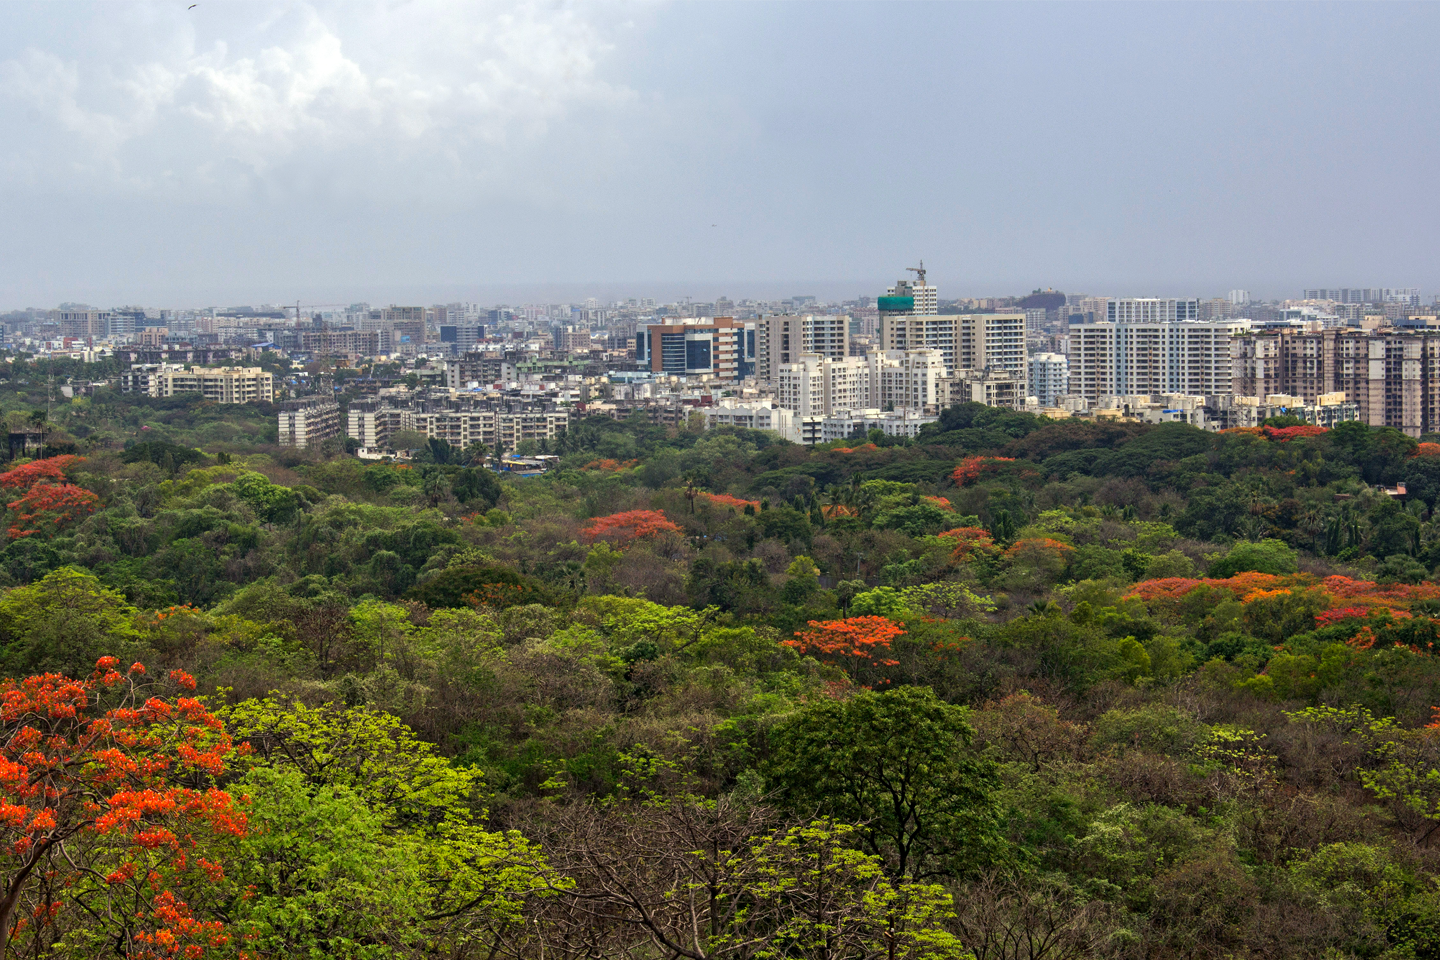 A view of the Aarey Milk Colony and the urban jungle of suburban Mumbai around it. Aarey falls in the ecosensitive zone of the Sanjay Gandhi National Park but it is not notified as a forest. Photo credit: Rajesh Sanap